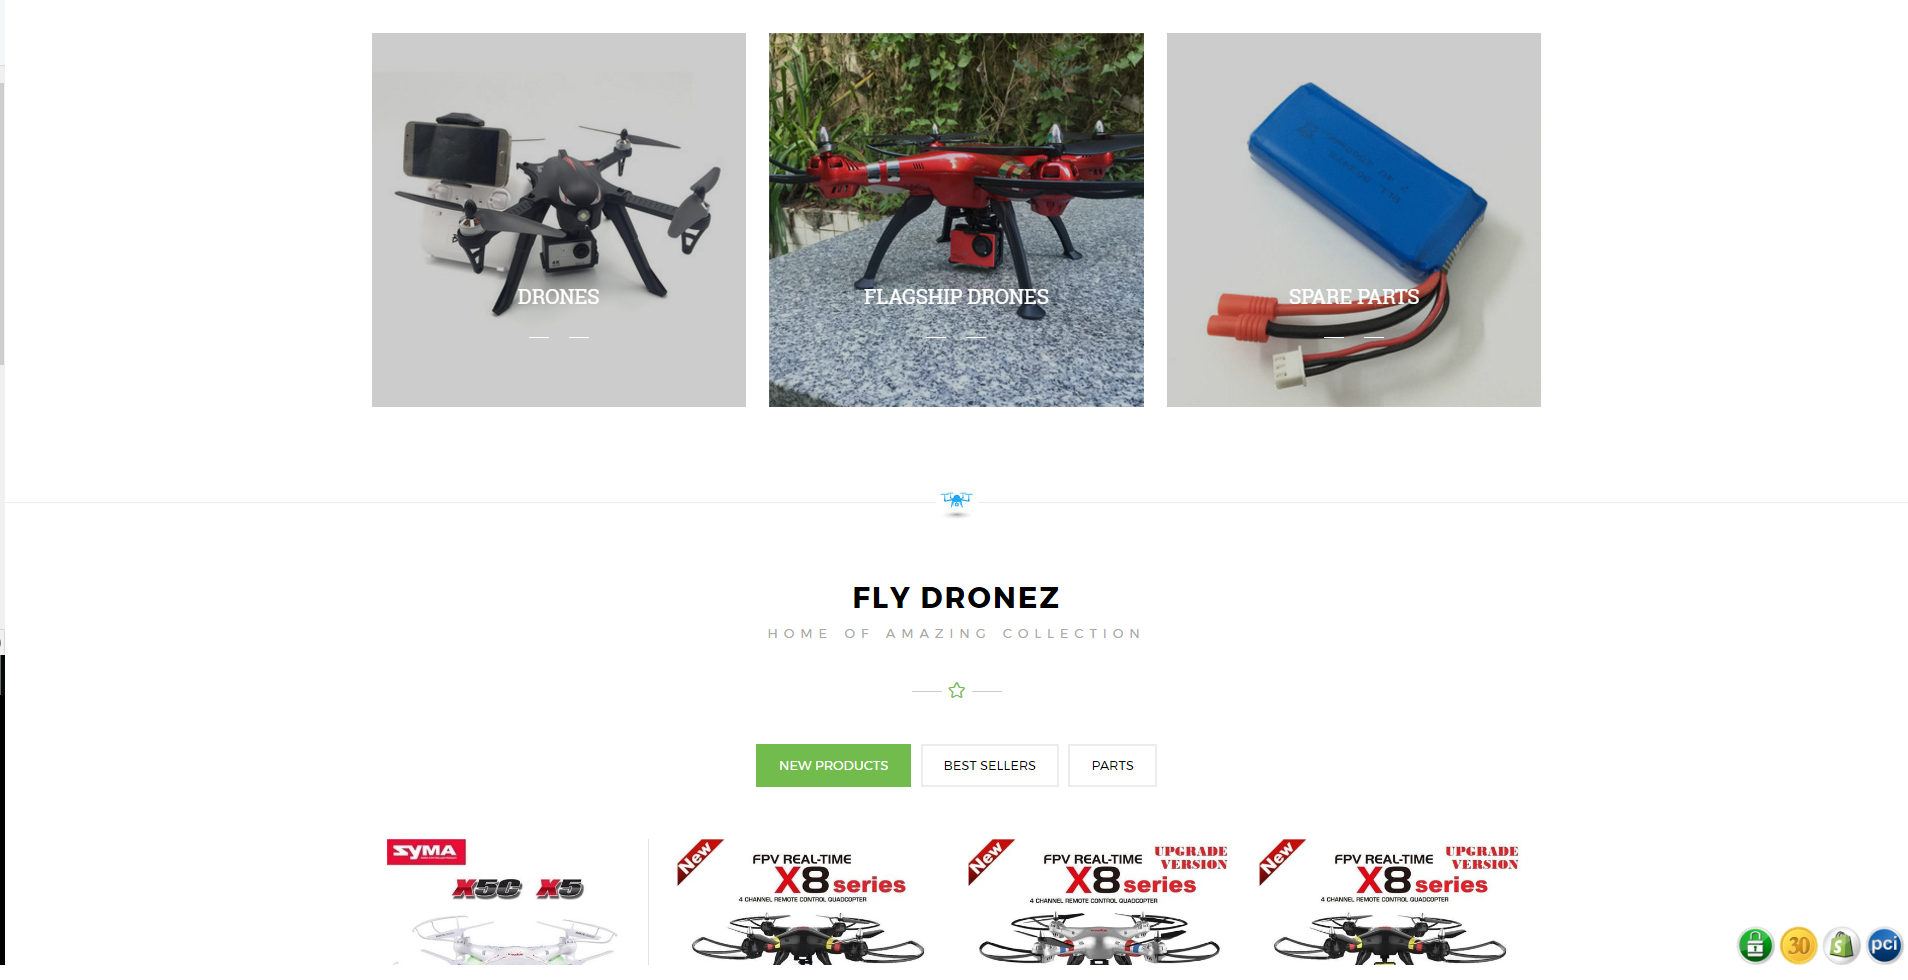 flydrone2